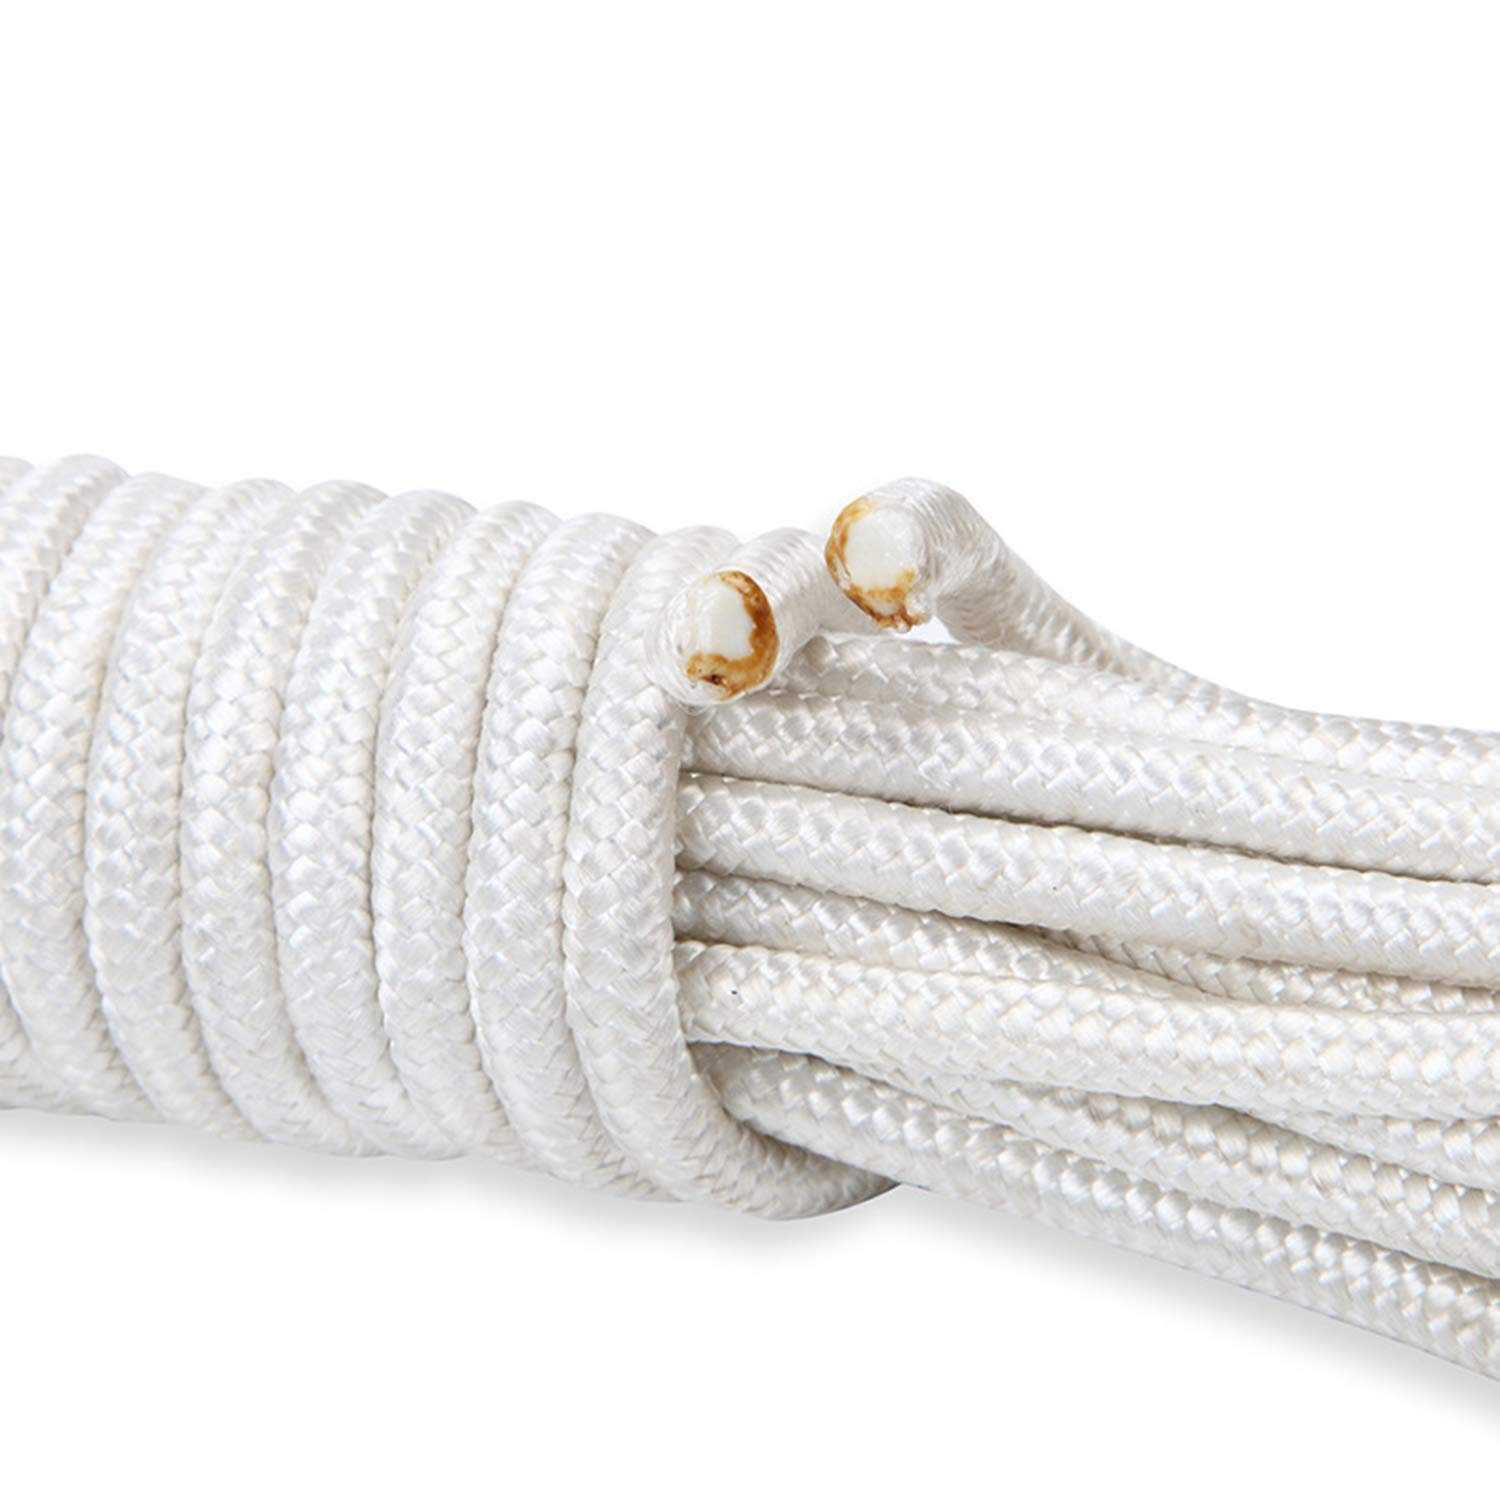 7mm Parachute Cord Multifunctional Climbing Rope Umbrella Rope for Hiking Camping Emergency Survival Equipment